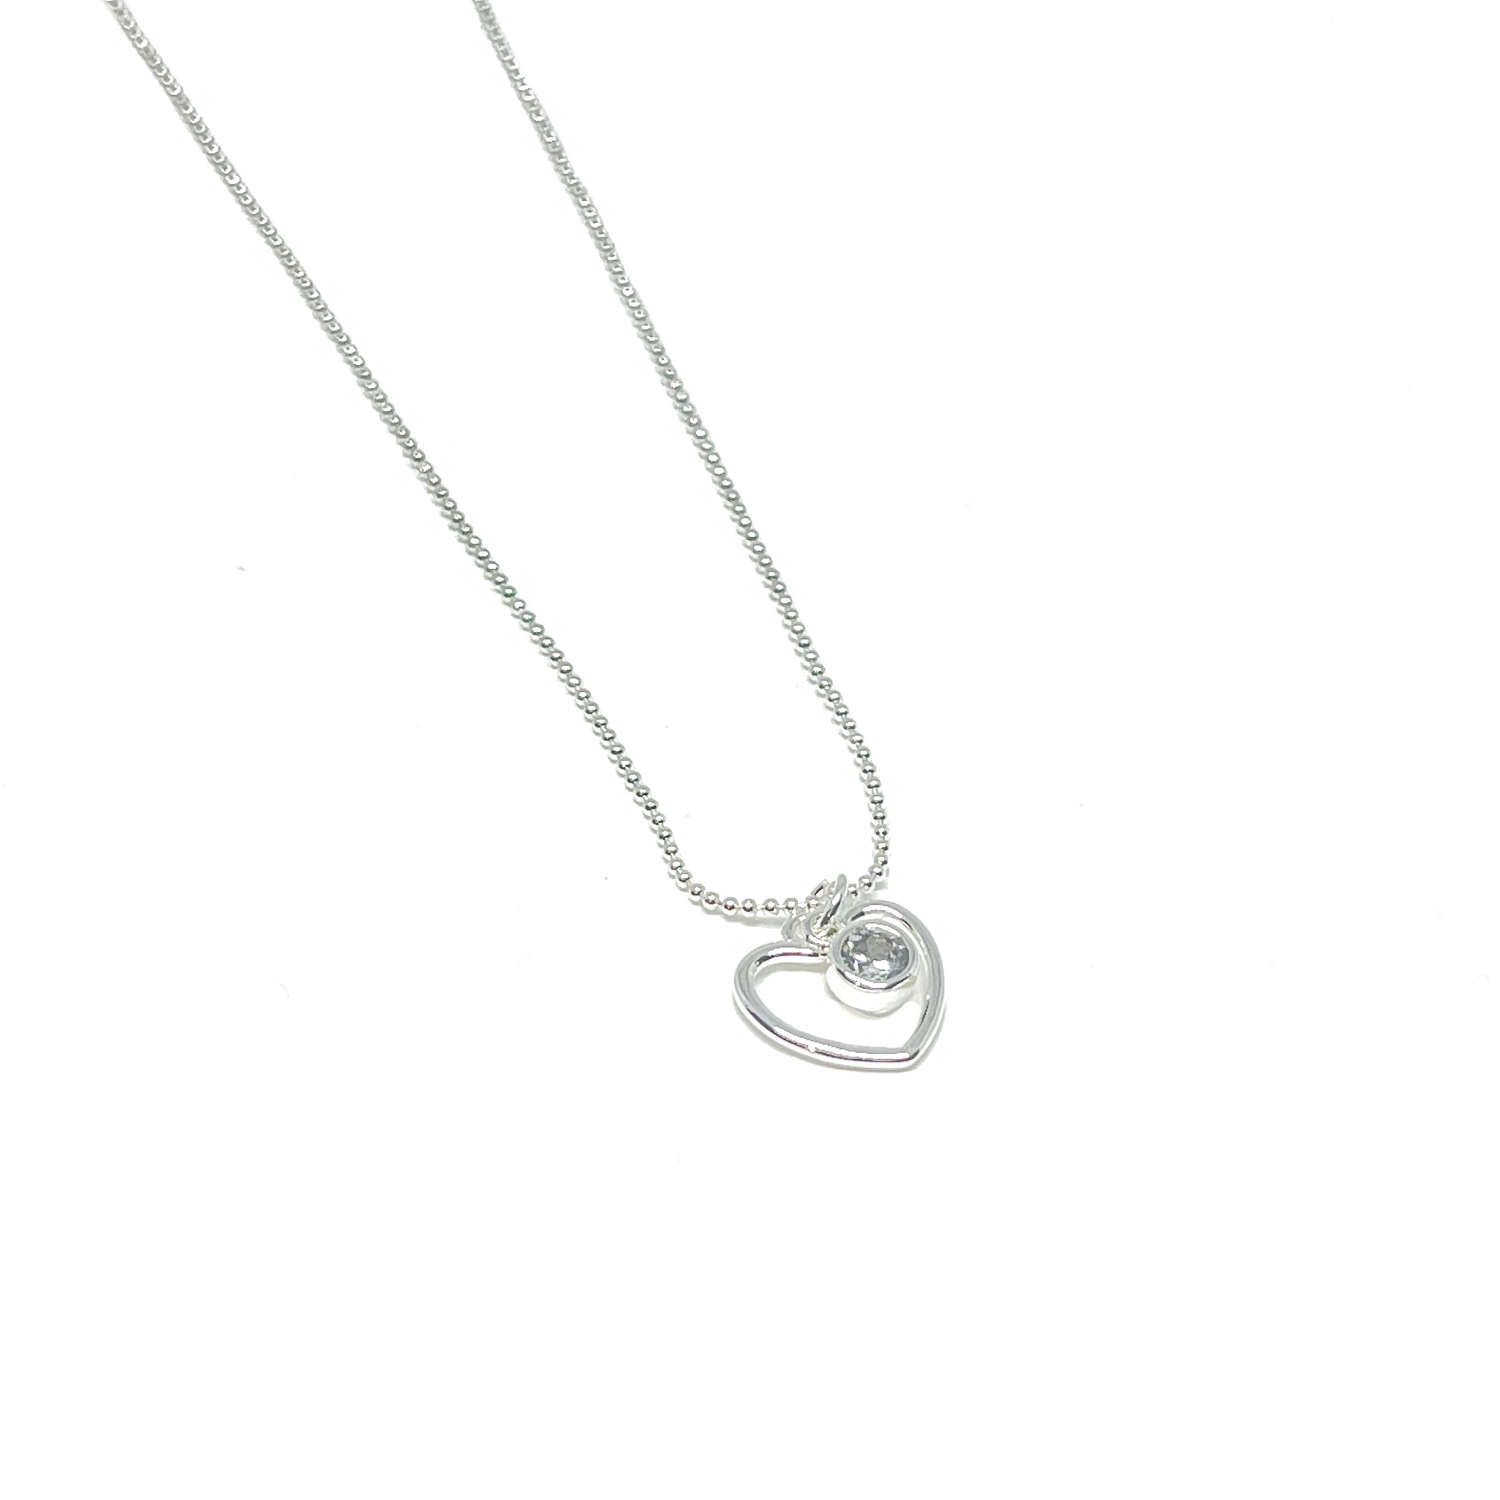 Selena Heart Necklace - Silver